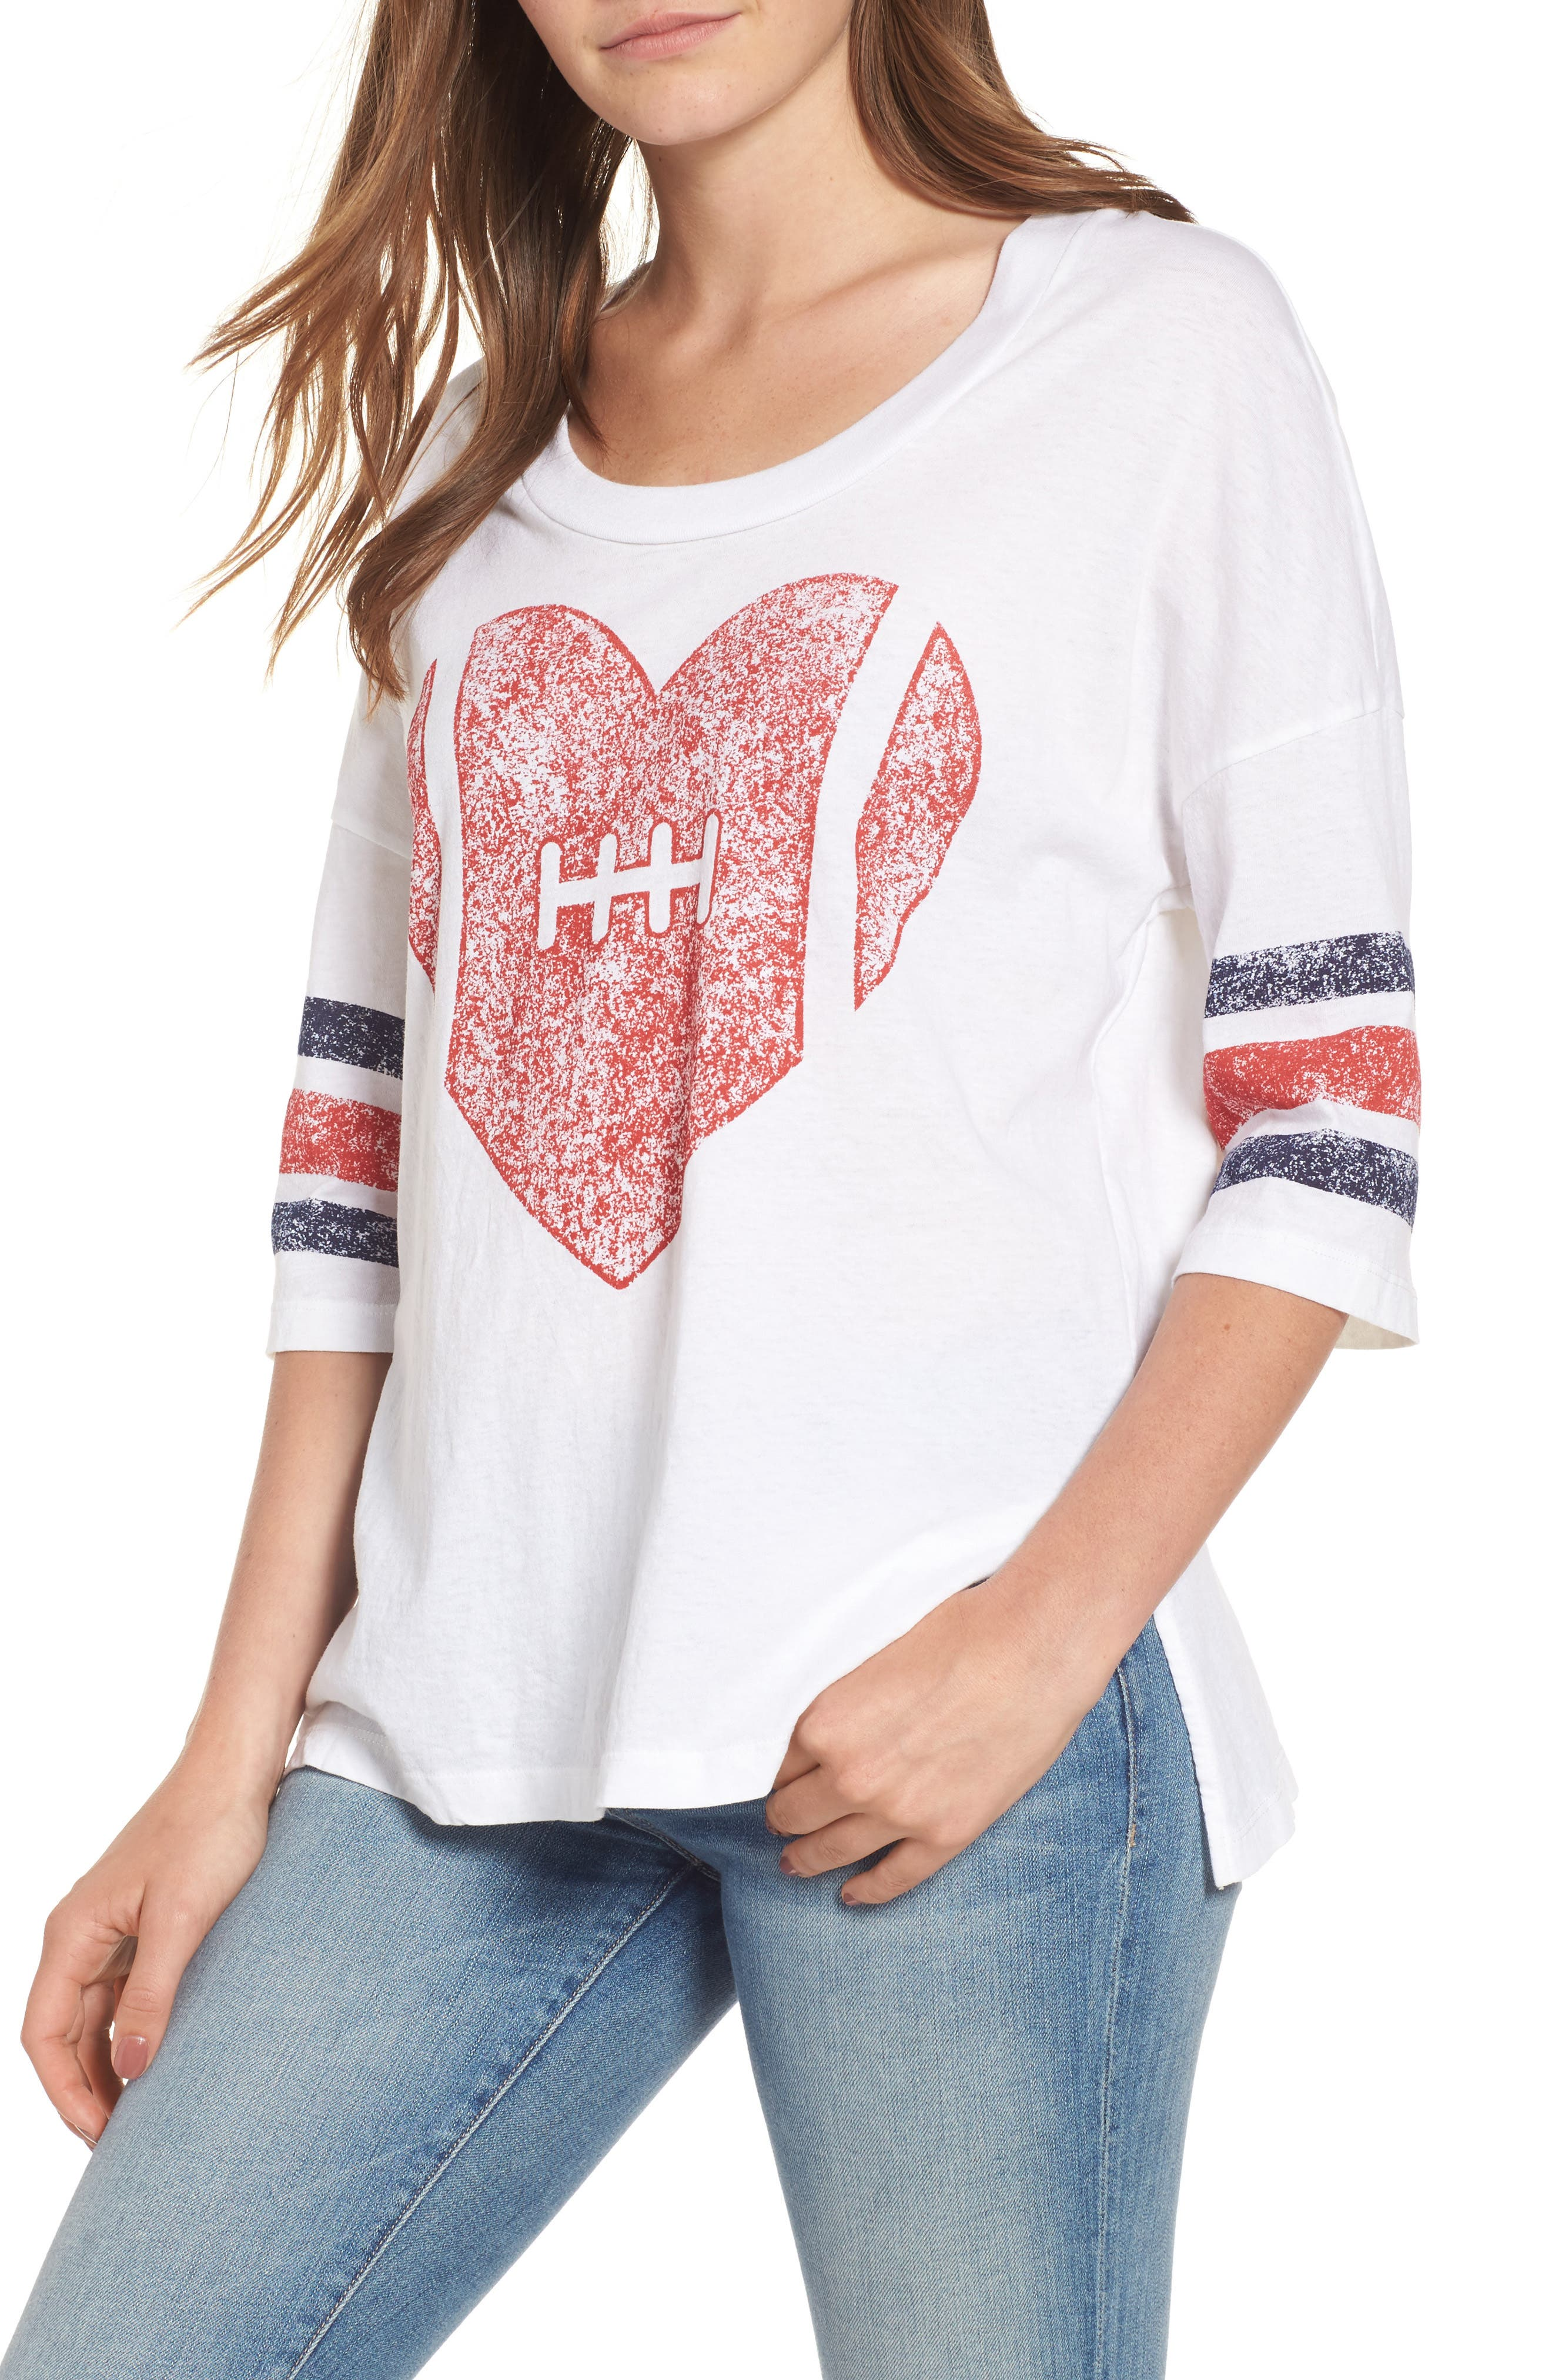 Sundry Football Heart Tee (Nordstrom Exclusive)